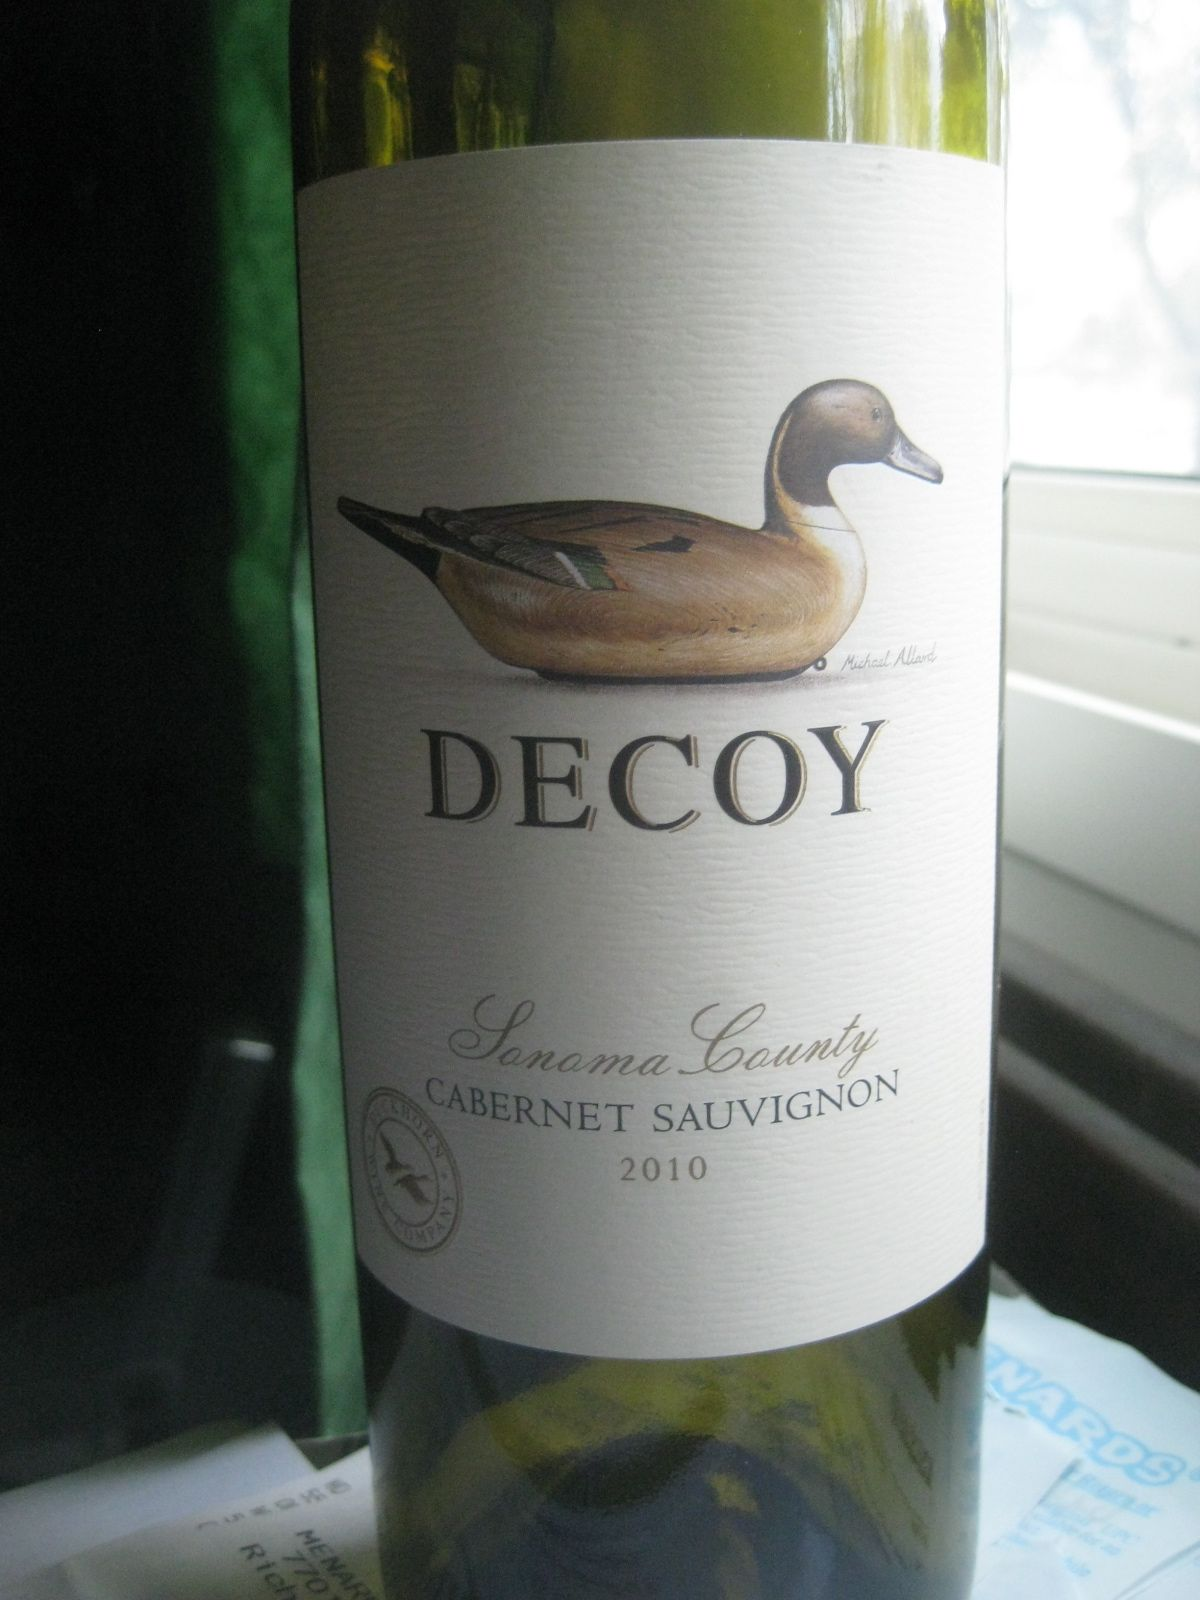 Had dinner party and Mr. Kot-tarrr brought this wonderful full smooth wine - highly endorse this!